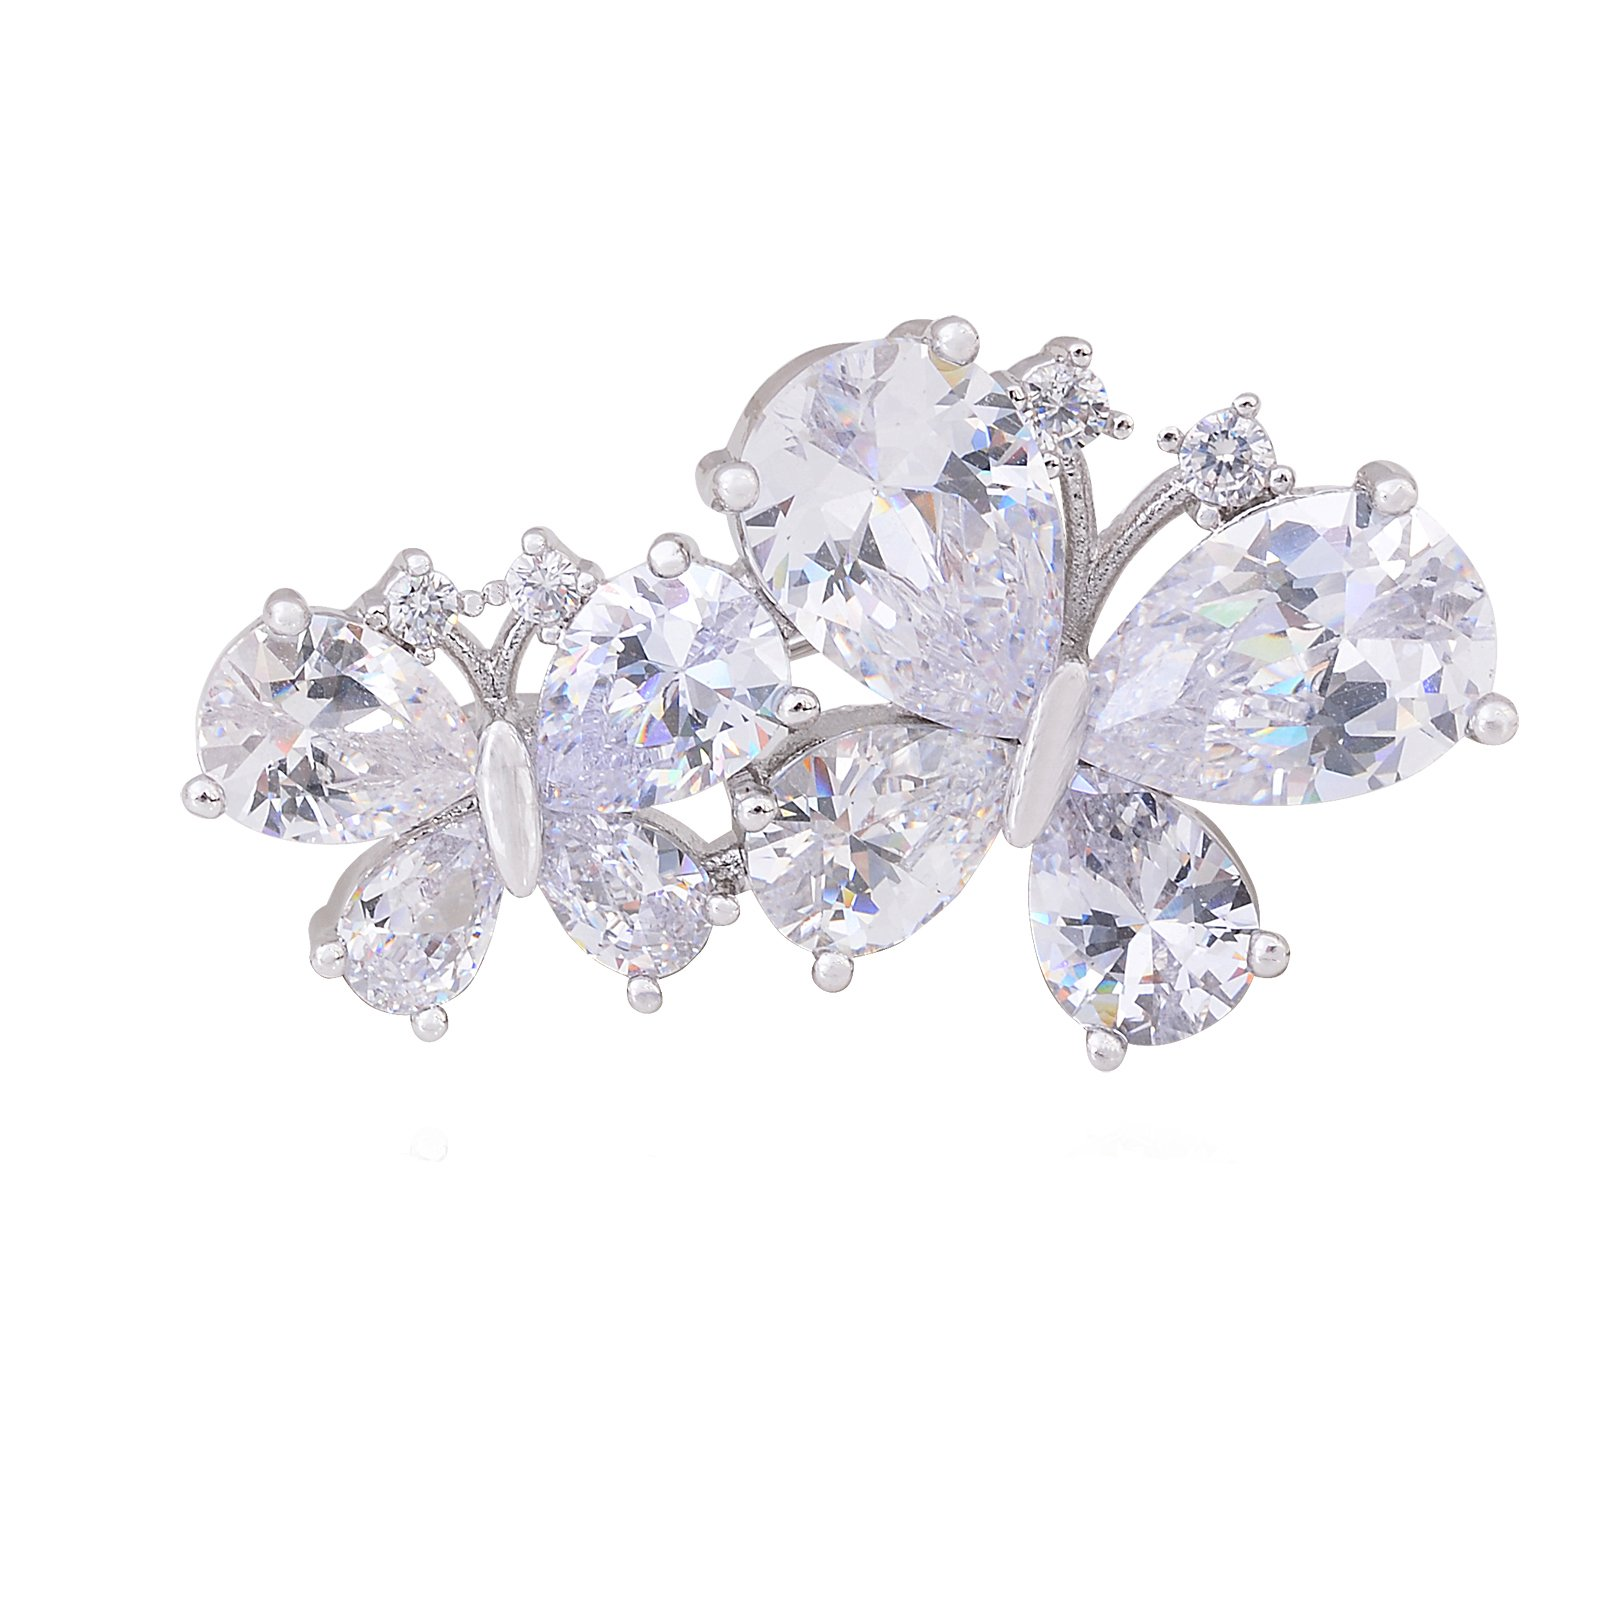 OBONNIE Shinning Crystal Butterfly Flower Women Brooch Pin Lapel Pin with Full Cubic Zirconia Party Gift (Double Butterfly)